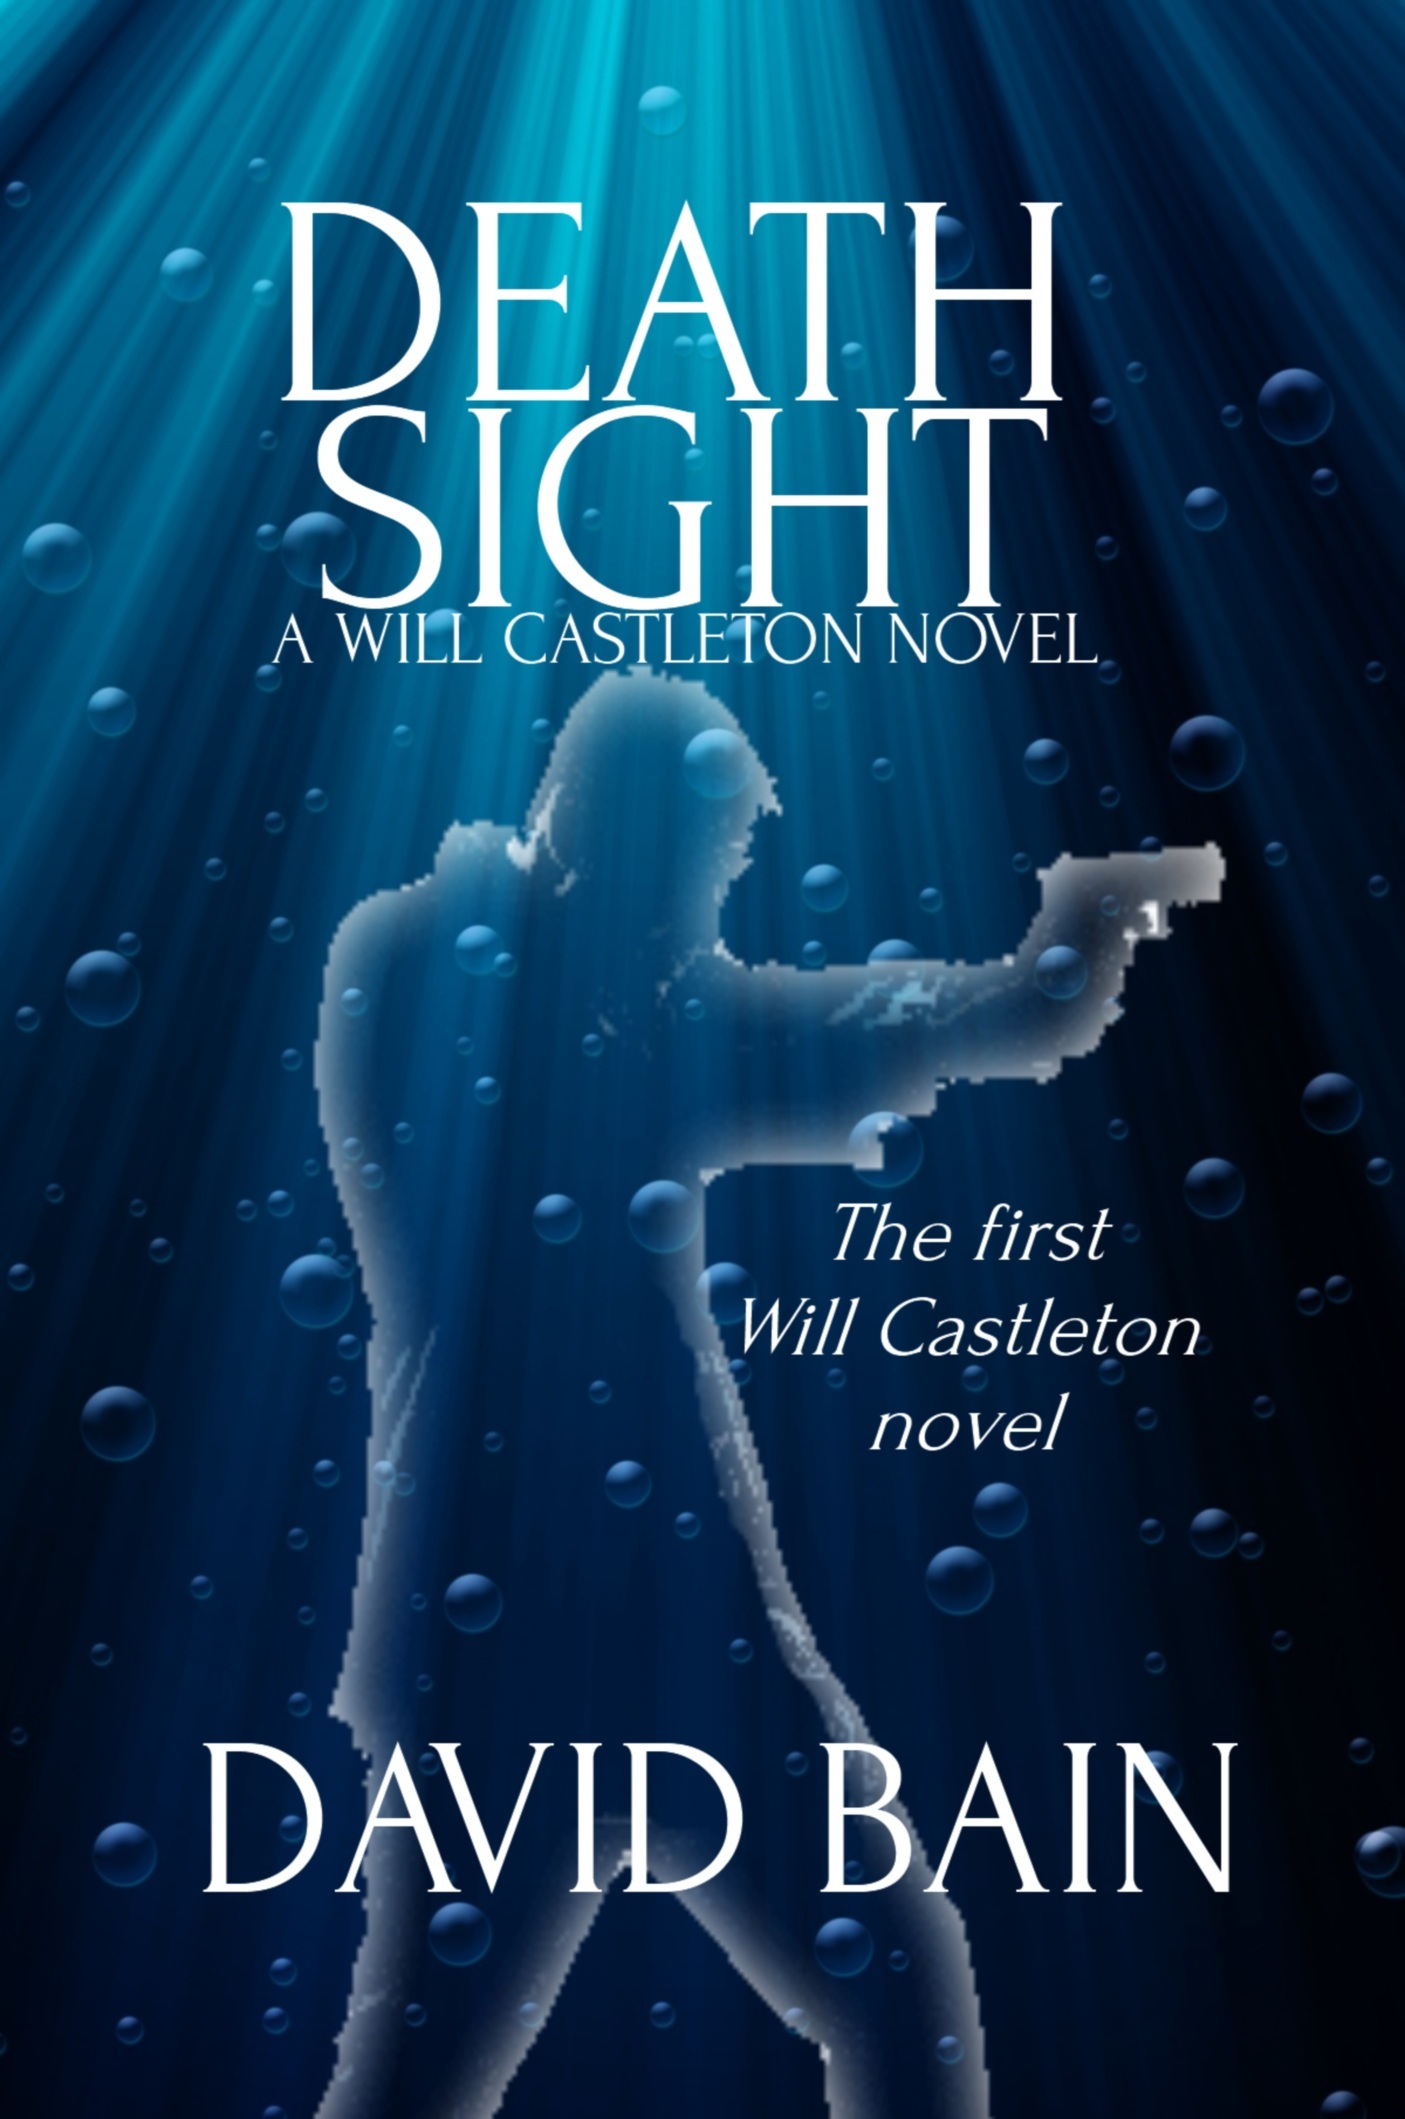 Death Sight: A Will Castleton Novel